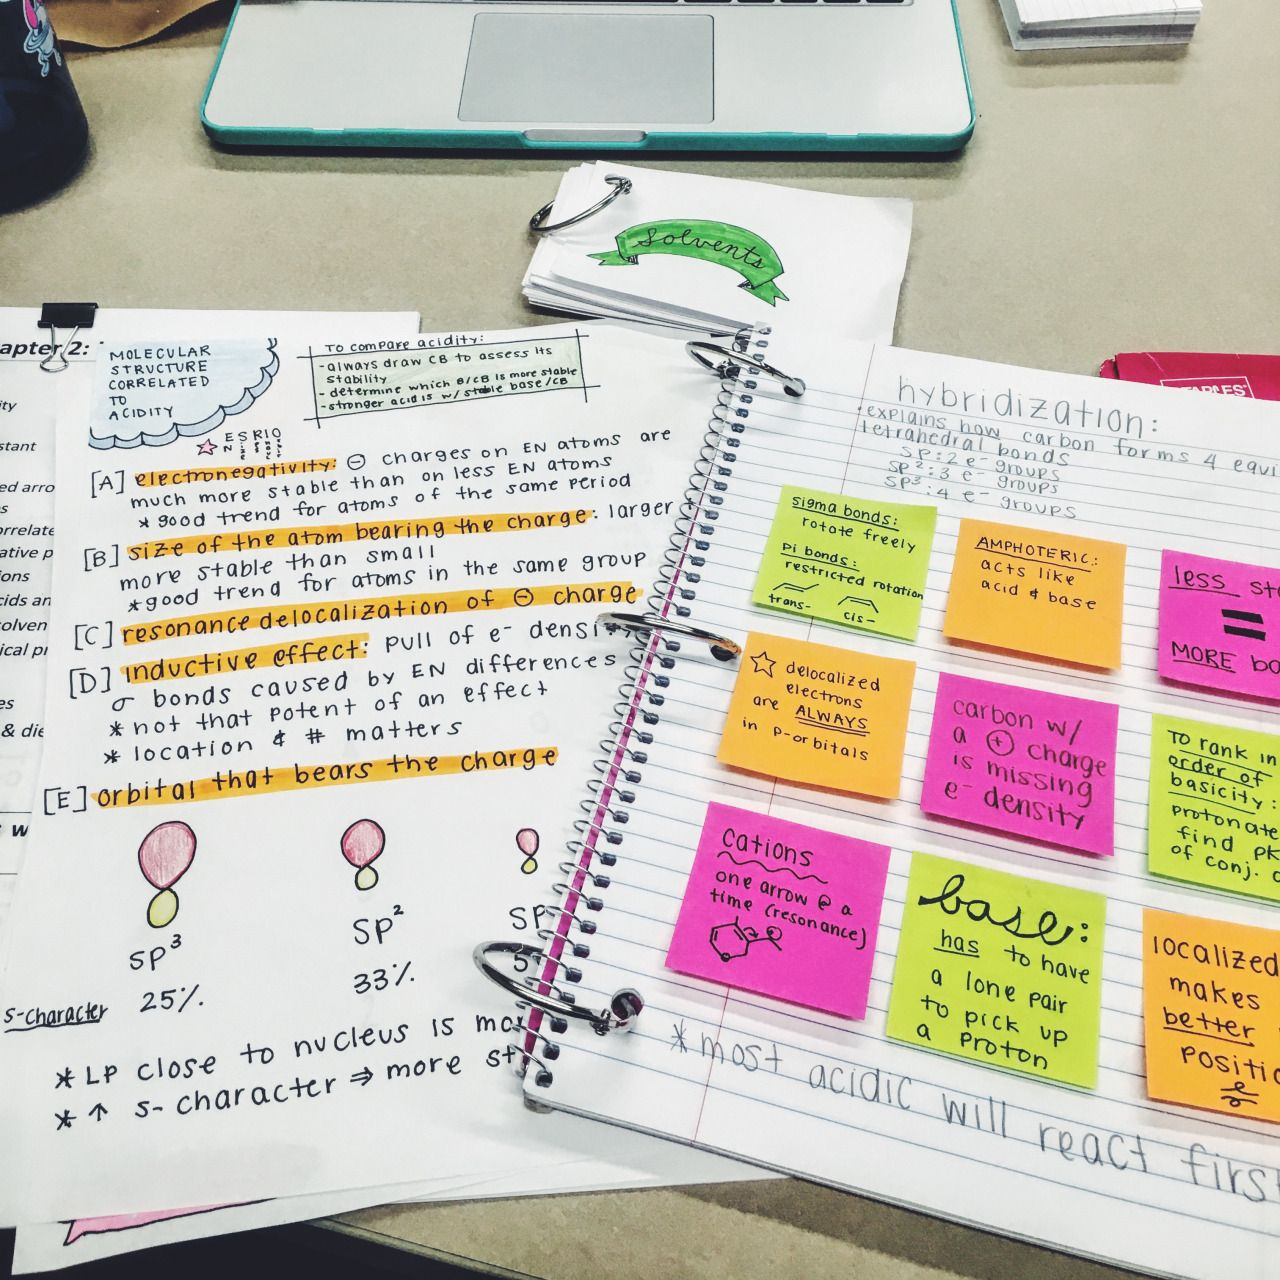 2/100] organic chemistry notes || pretty notes help me focus | Best